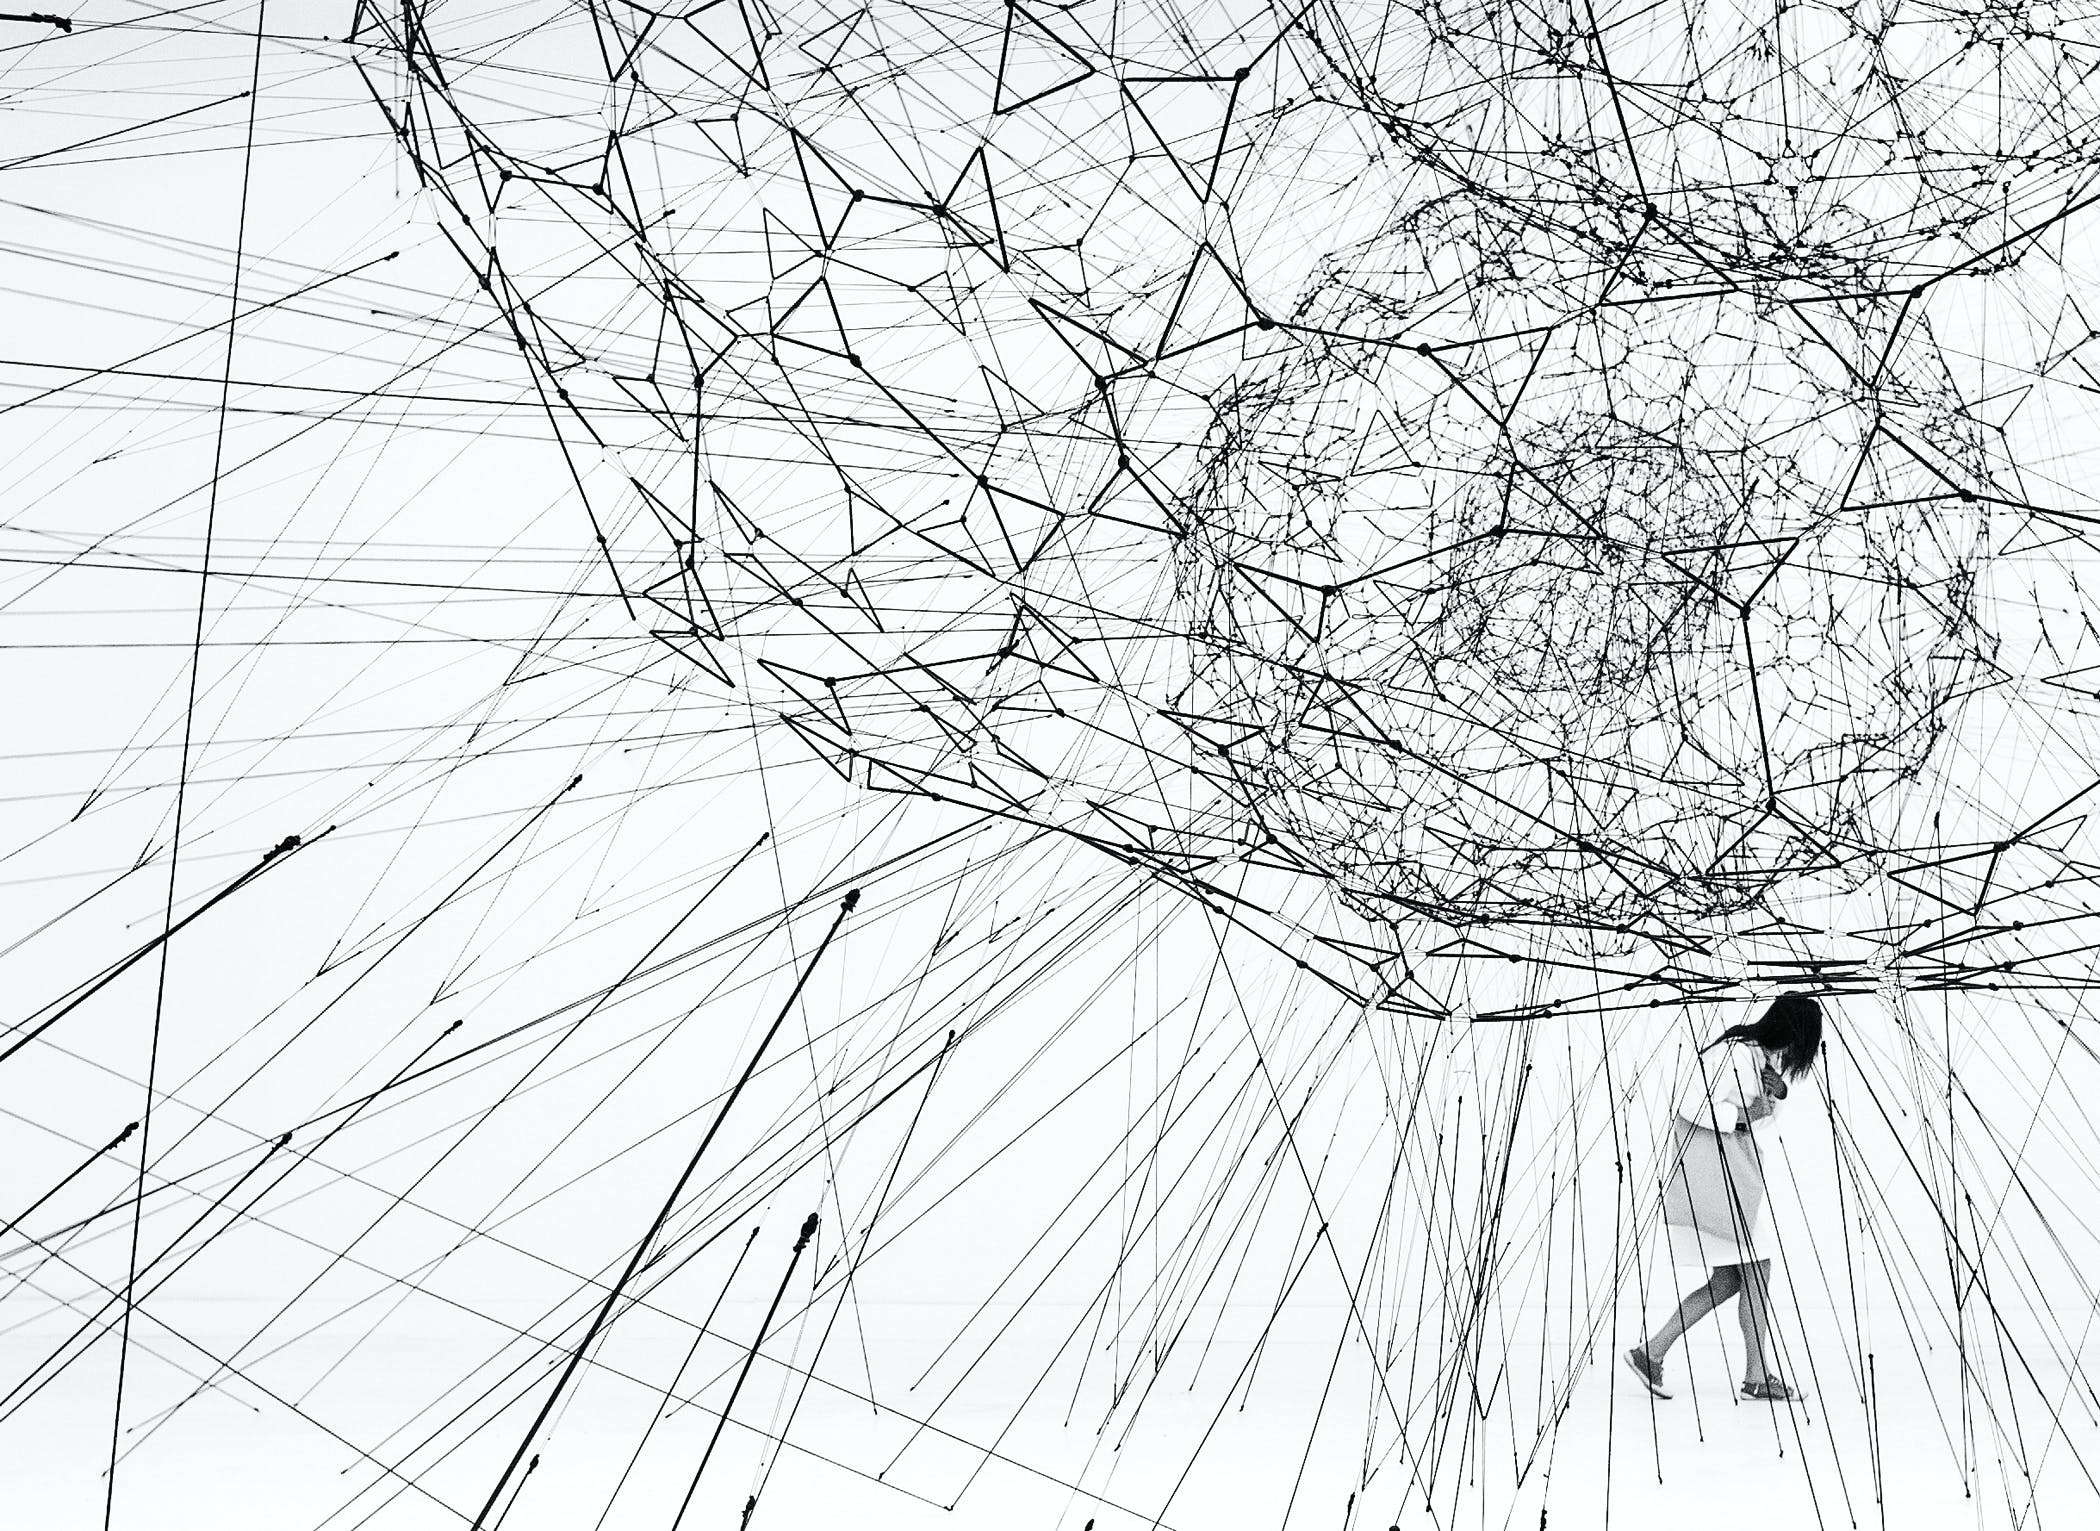 Galaxies Forming along Filaments, like Droplets along the Strands of a Spider's Web, Tomás Saraceno